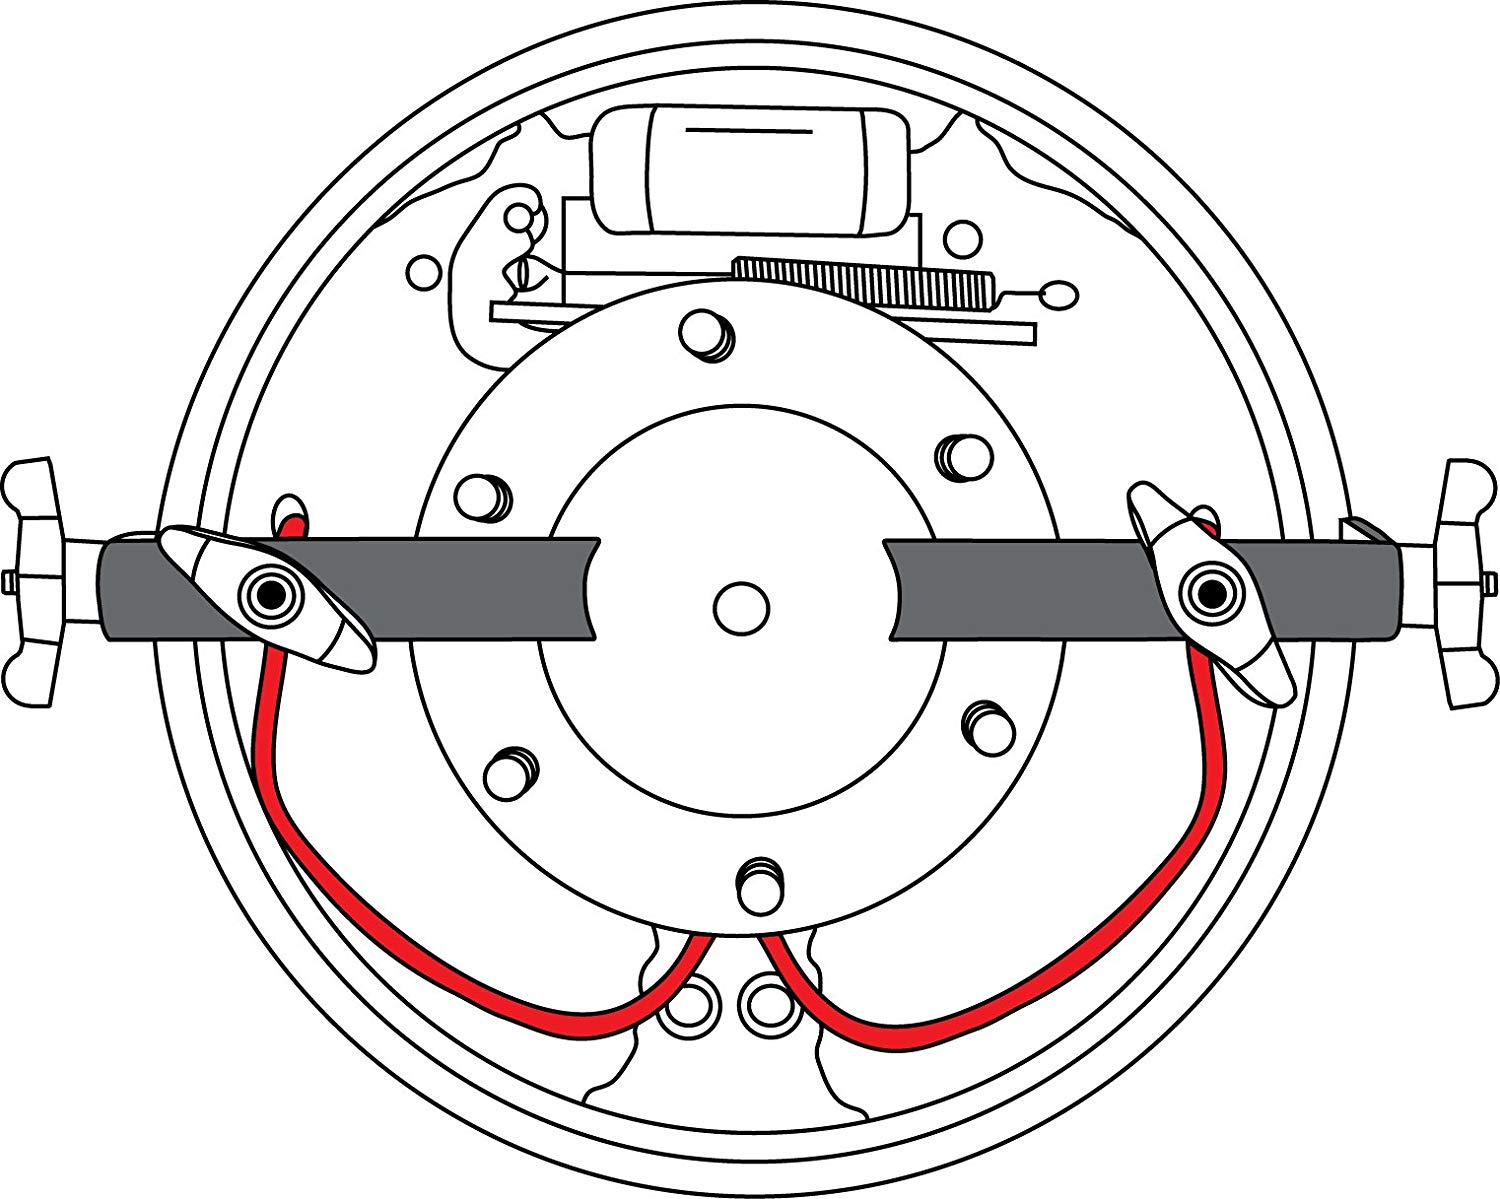 [XE_0352] Chevys10Rearbrakediagram Drum Brake Diagram For